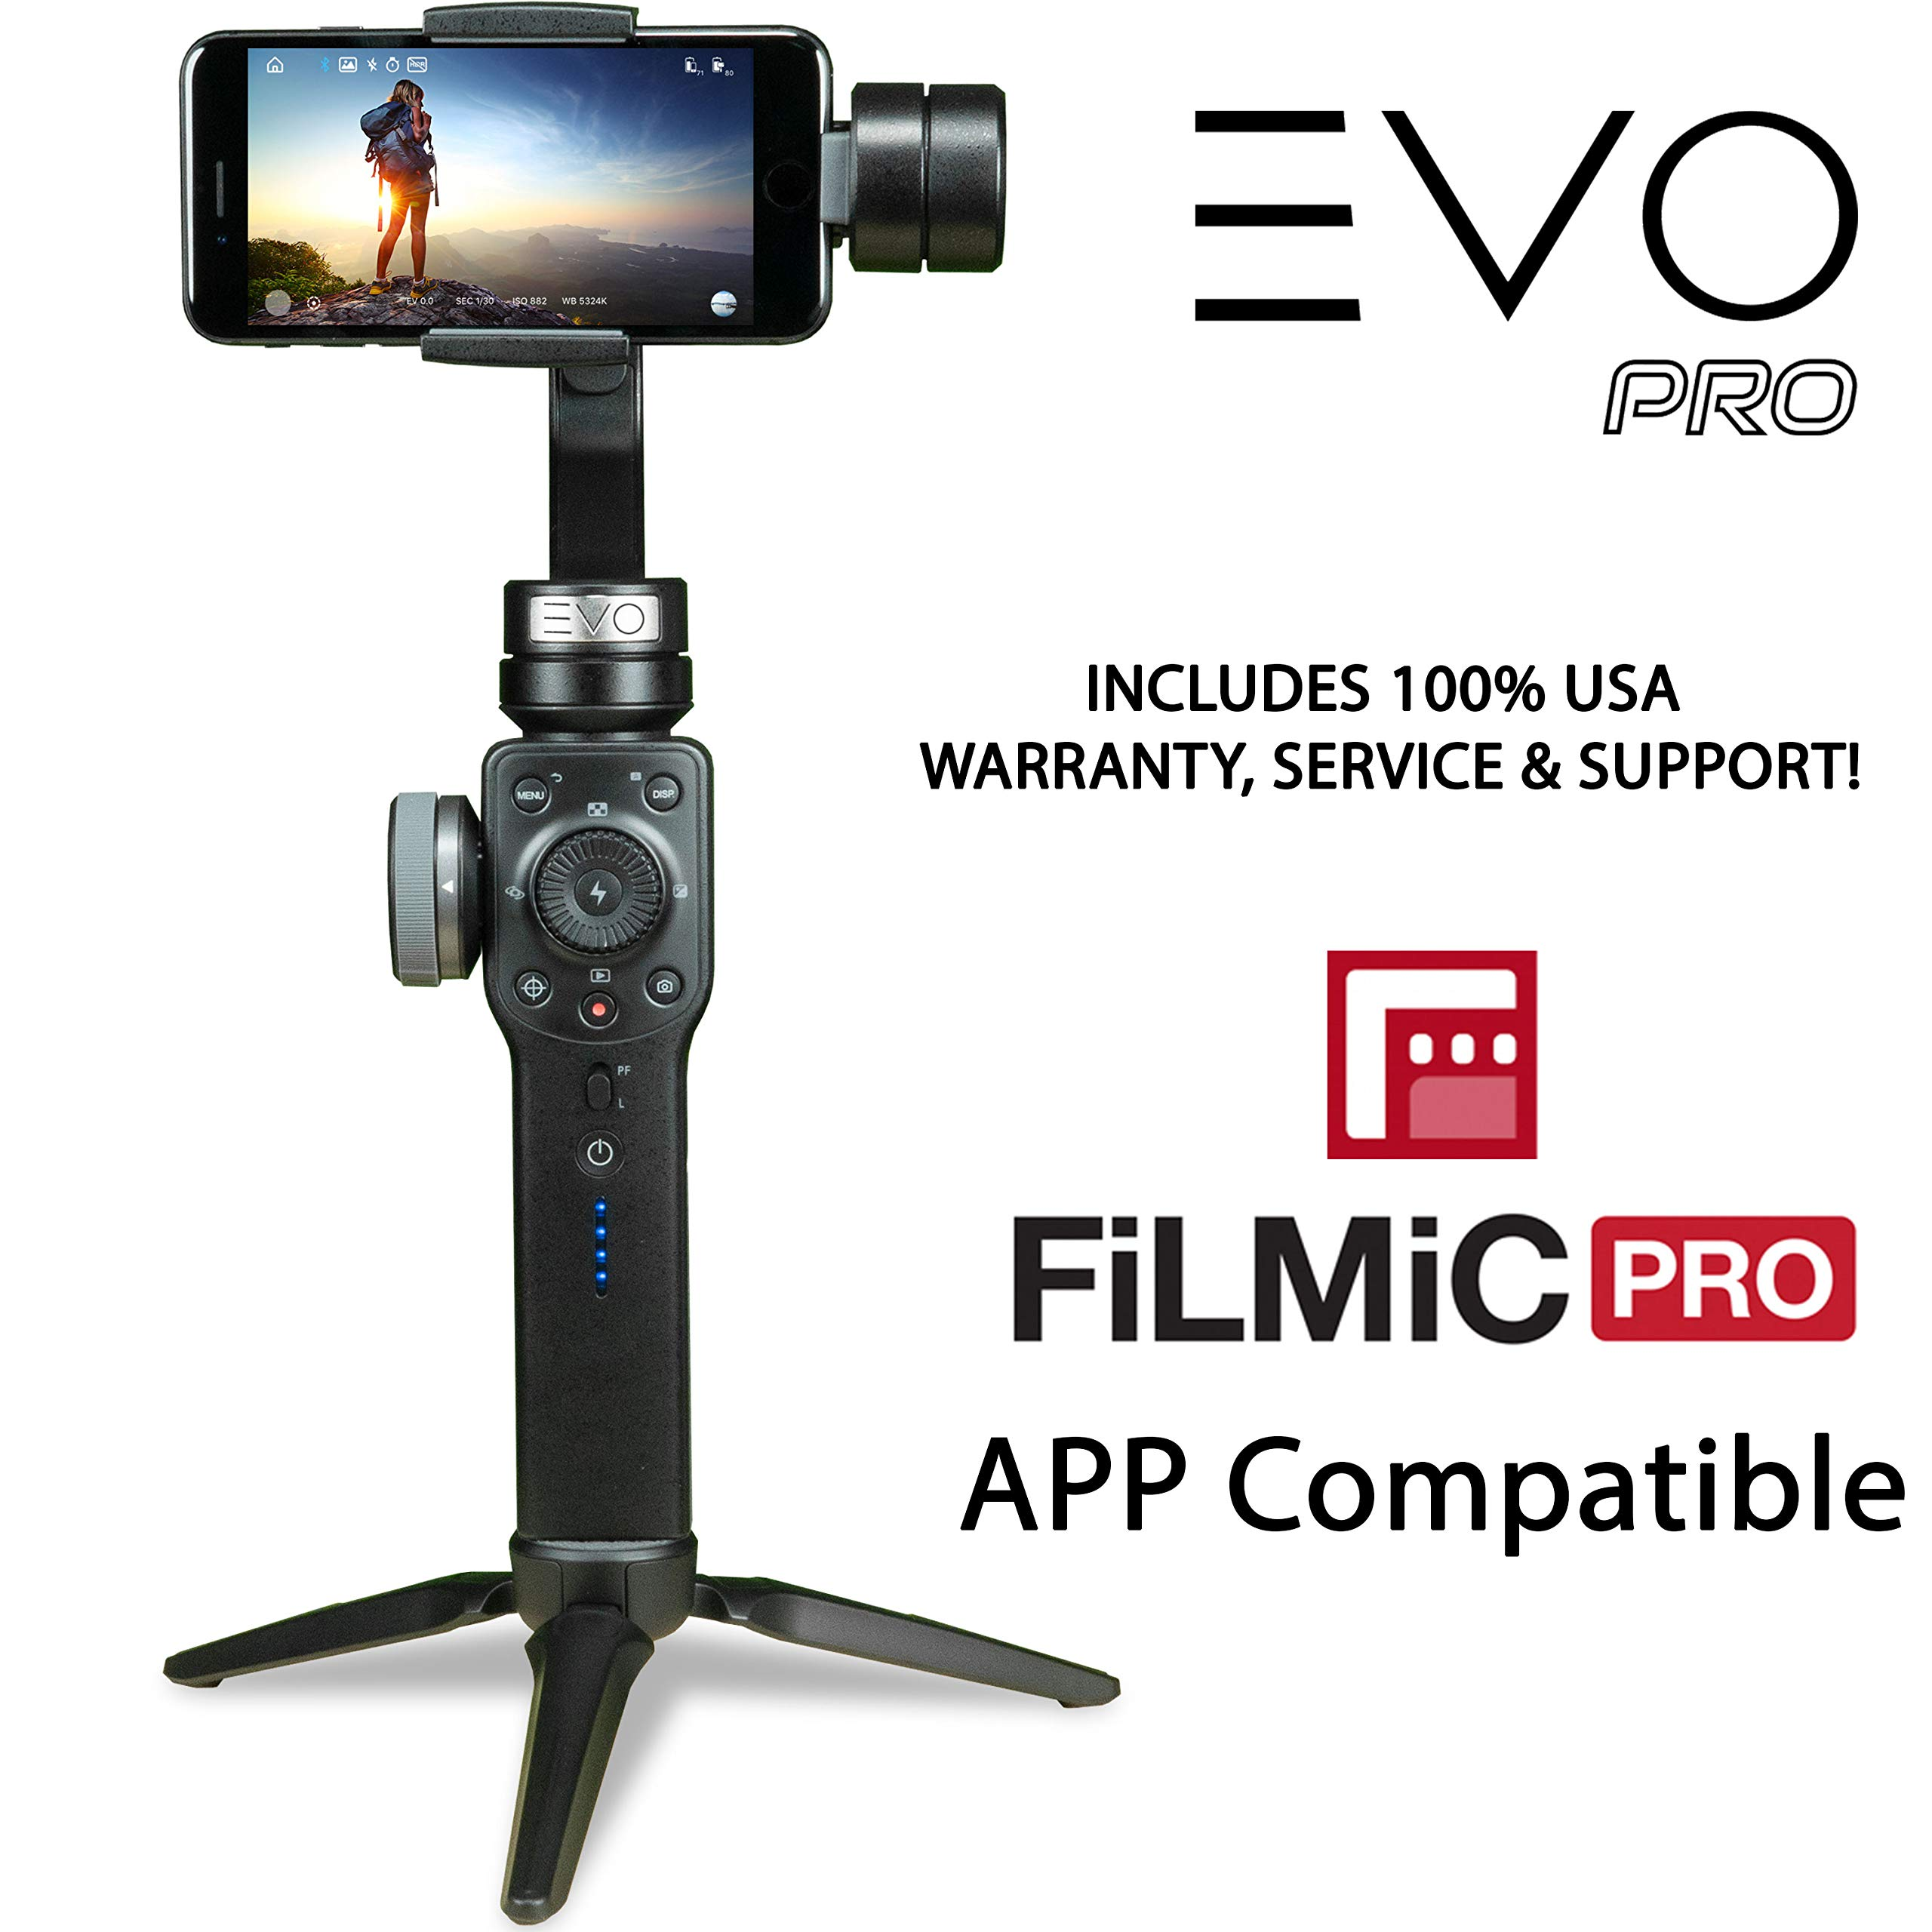 EVO PRO Smartphone Camera Stabilizer with Focus Pull and Zoom - Compatible with iOS iPhone or Android Smartphones, FiLMiC PRO APP Compatible - Includes Tripod Stand by EVO Gimbals